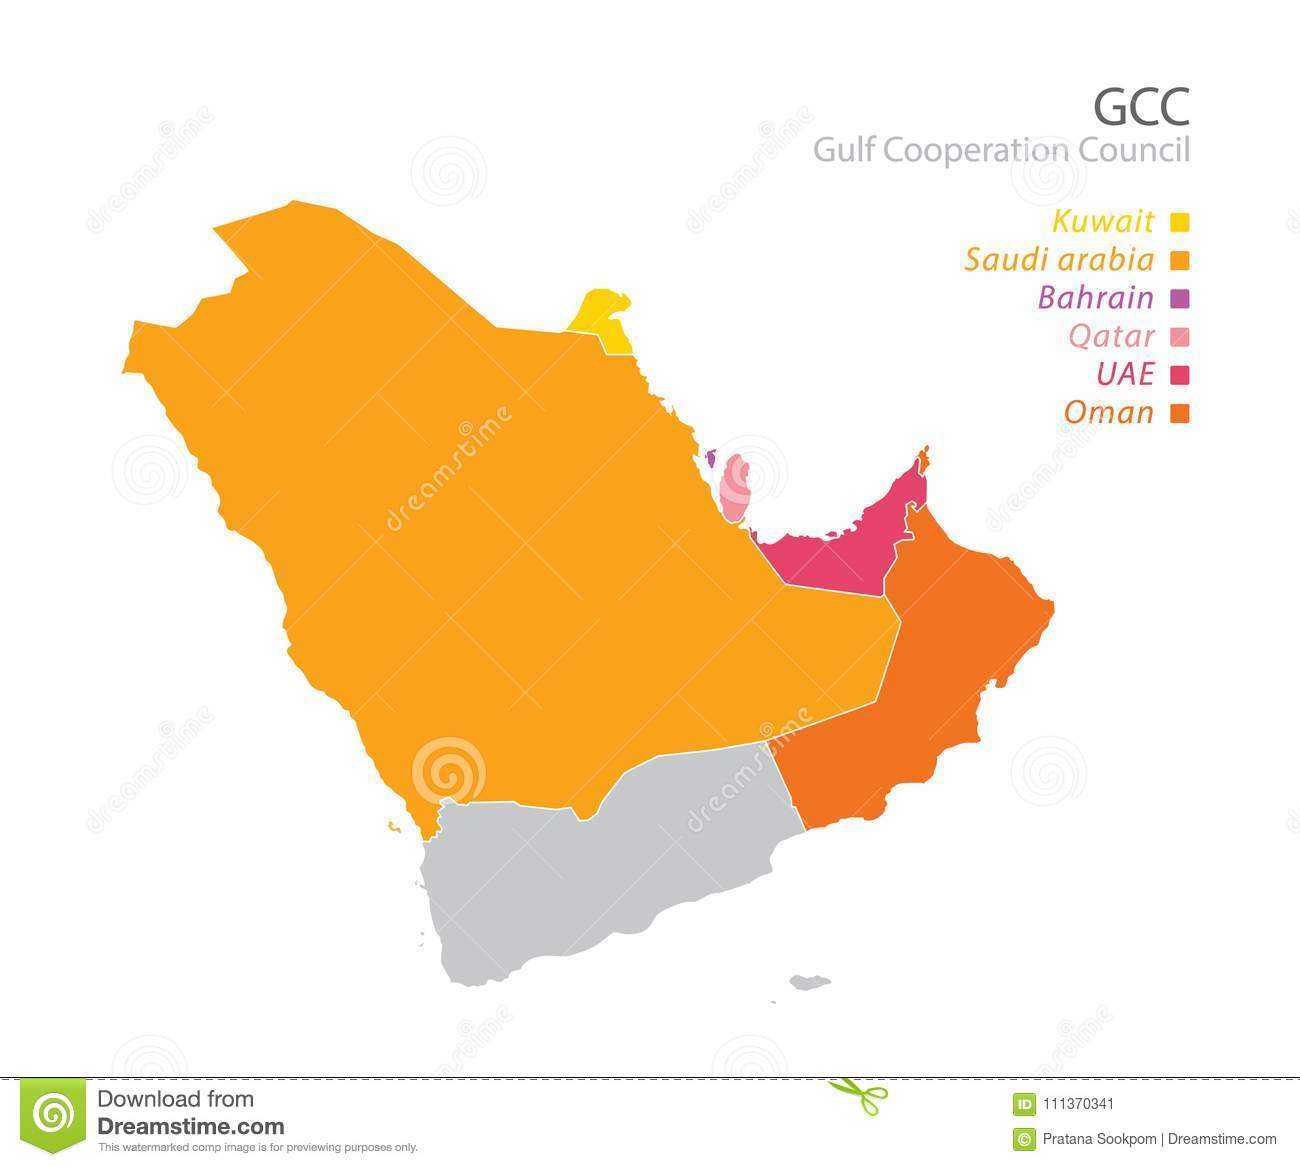 Map Of The Gulf Cooperation Council GCC`s Members. Vector ... Gcc Map on glendale community college map, south asian association for regional cooperation, yemen map, persian gulf arab states, post office zip code map, gvb map, dot map, modern slavery map, africa map, find locations on a map, world map, art map, saudi arabia map, make map, oman map, right bank bordeaux map, u.s. drought map, levant map, 2011 gcc games, eurasian economic community, east african community, weather channel radar map, java map, economic community of central african states, mesa community college campus map, uae map, central american integration system,